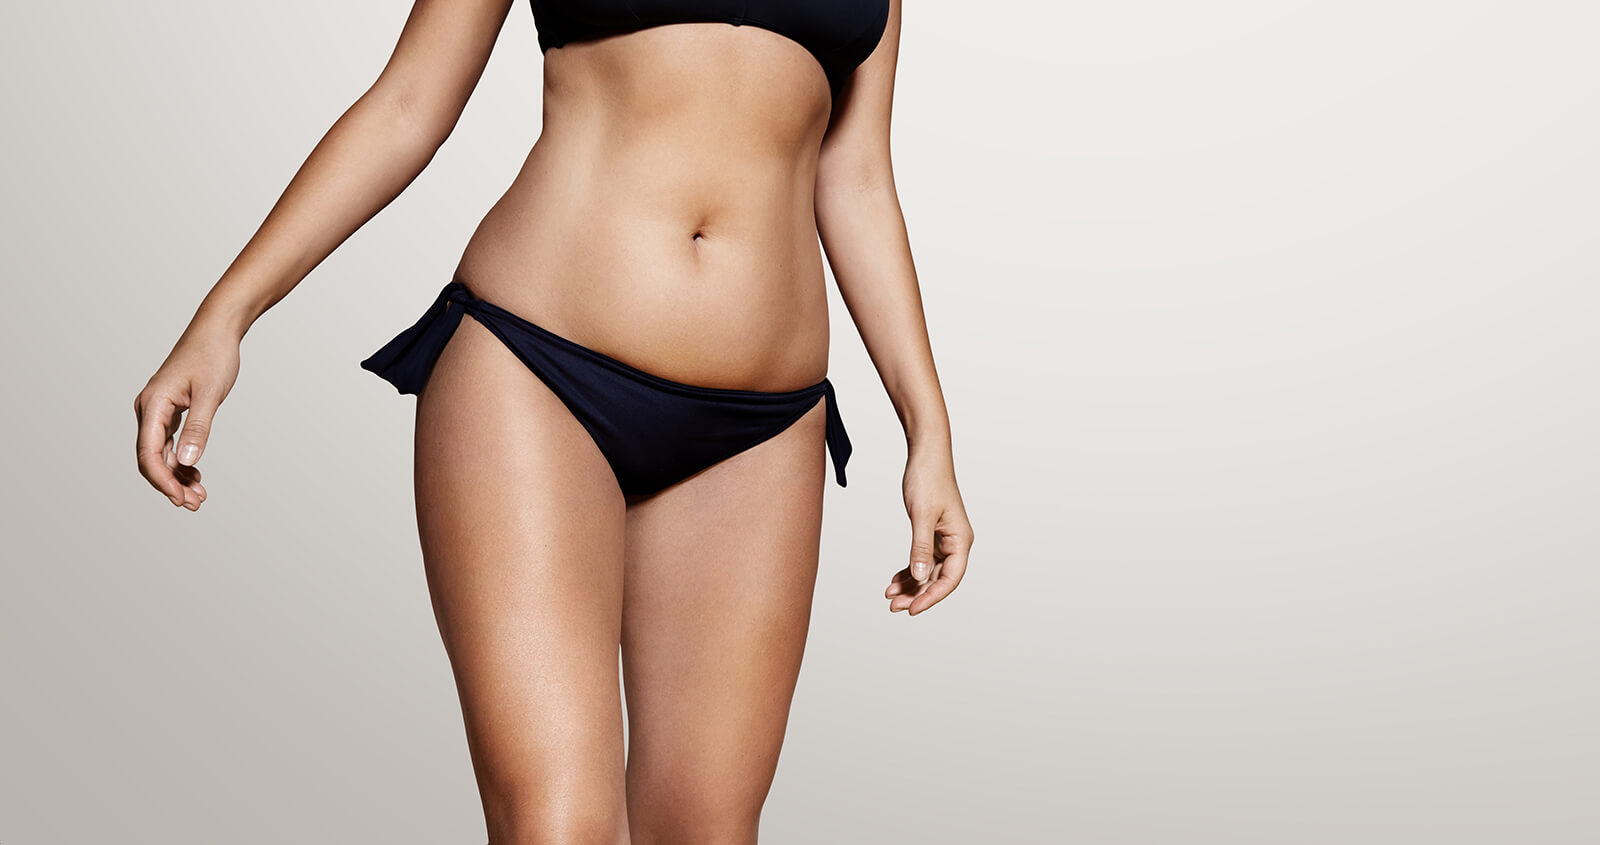 Freezing Your Body Fat at Associates in Dermatology in Westlake Area